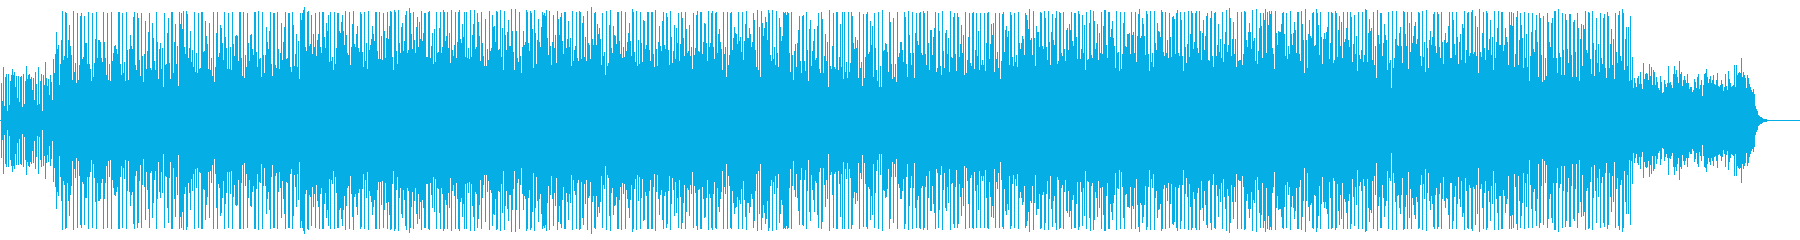 Rhythmic, medium tempo sound's reproduced waveform